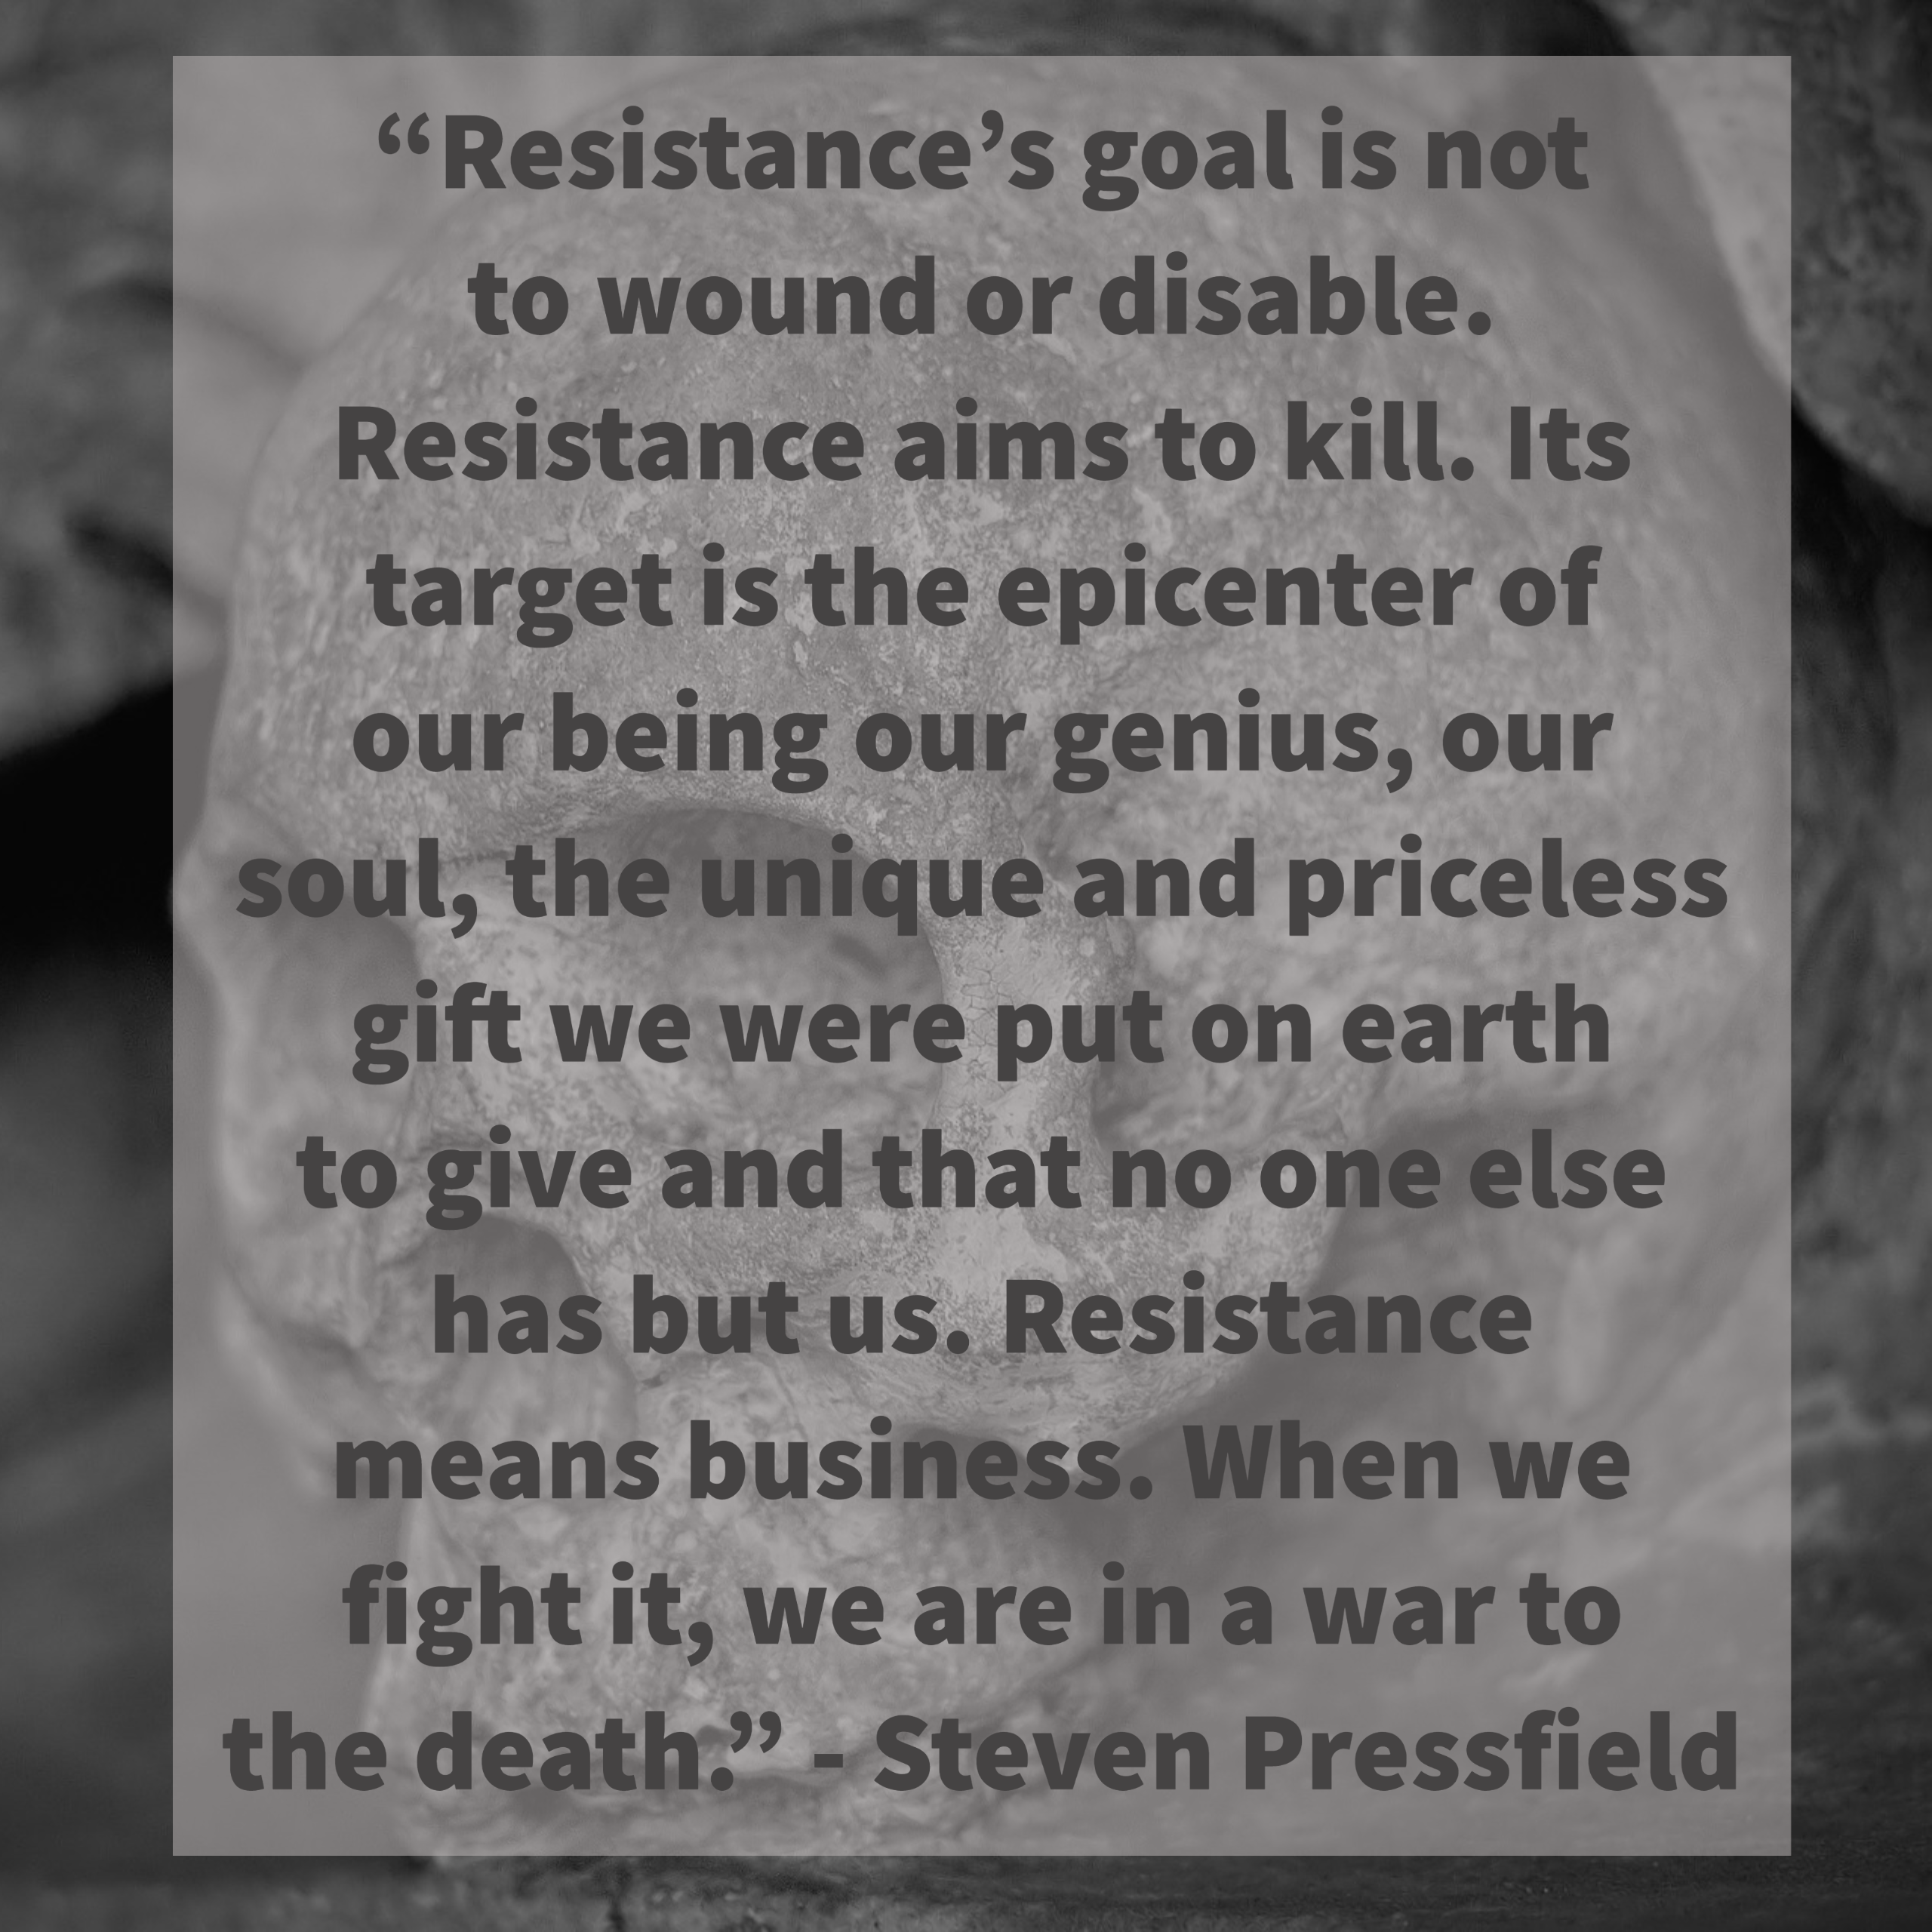 [Image] Powerful Perspective on Resistance